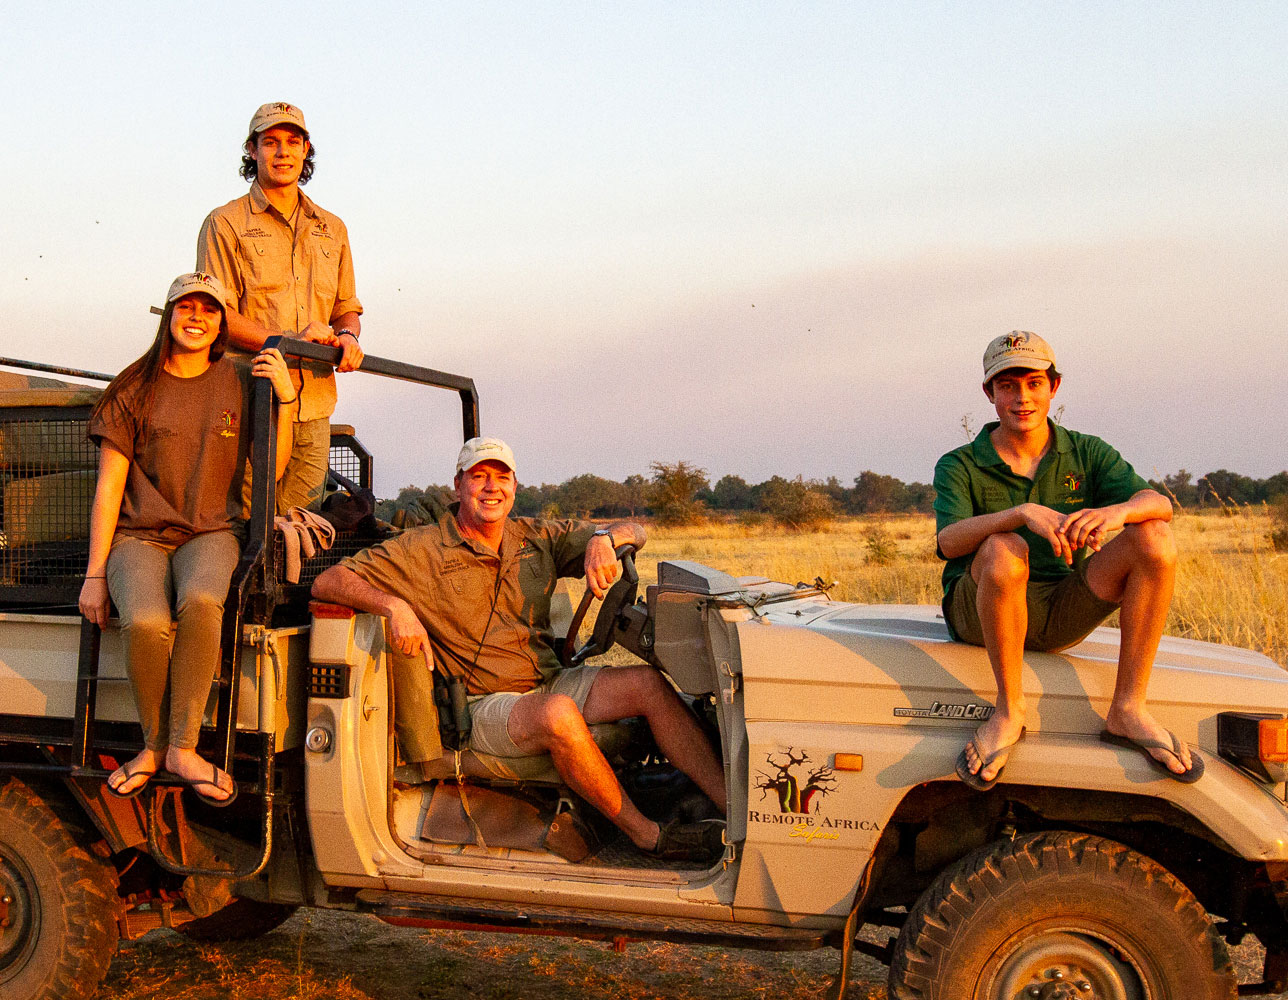 Mark McAdam, John's long standing friend, joins the Remote Africa Safaris family as investor and director along with his children, William, Jack and Lucy.